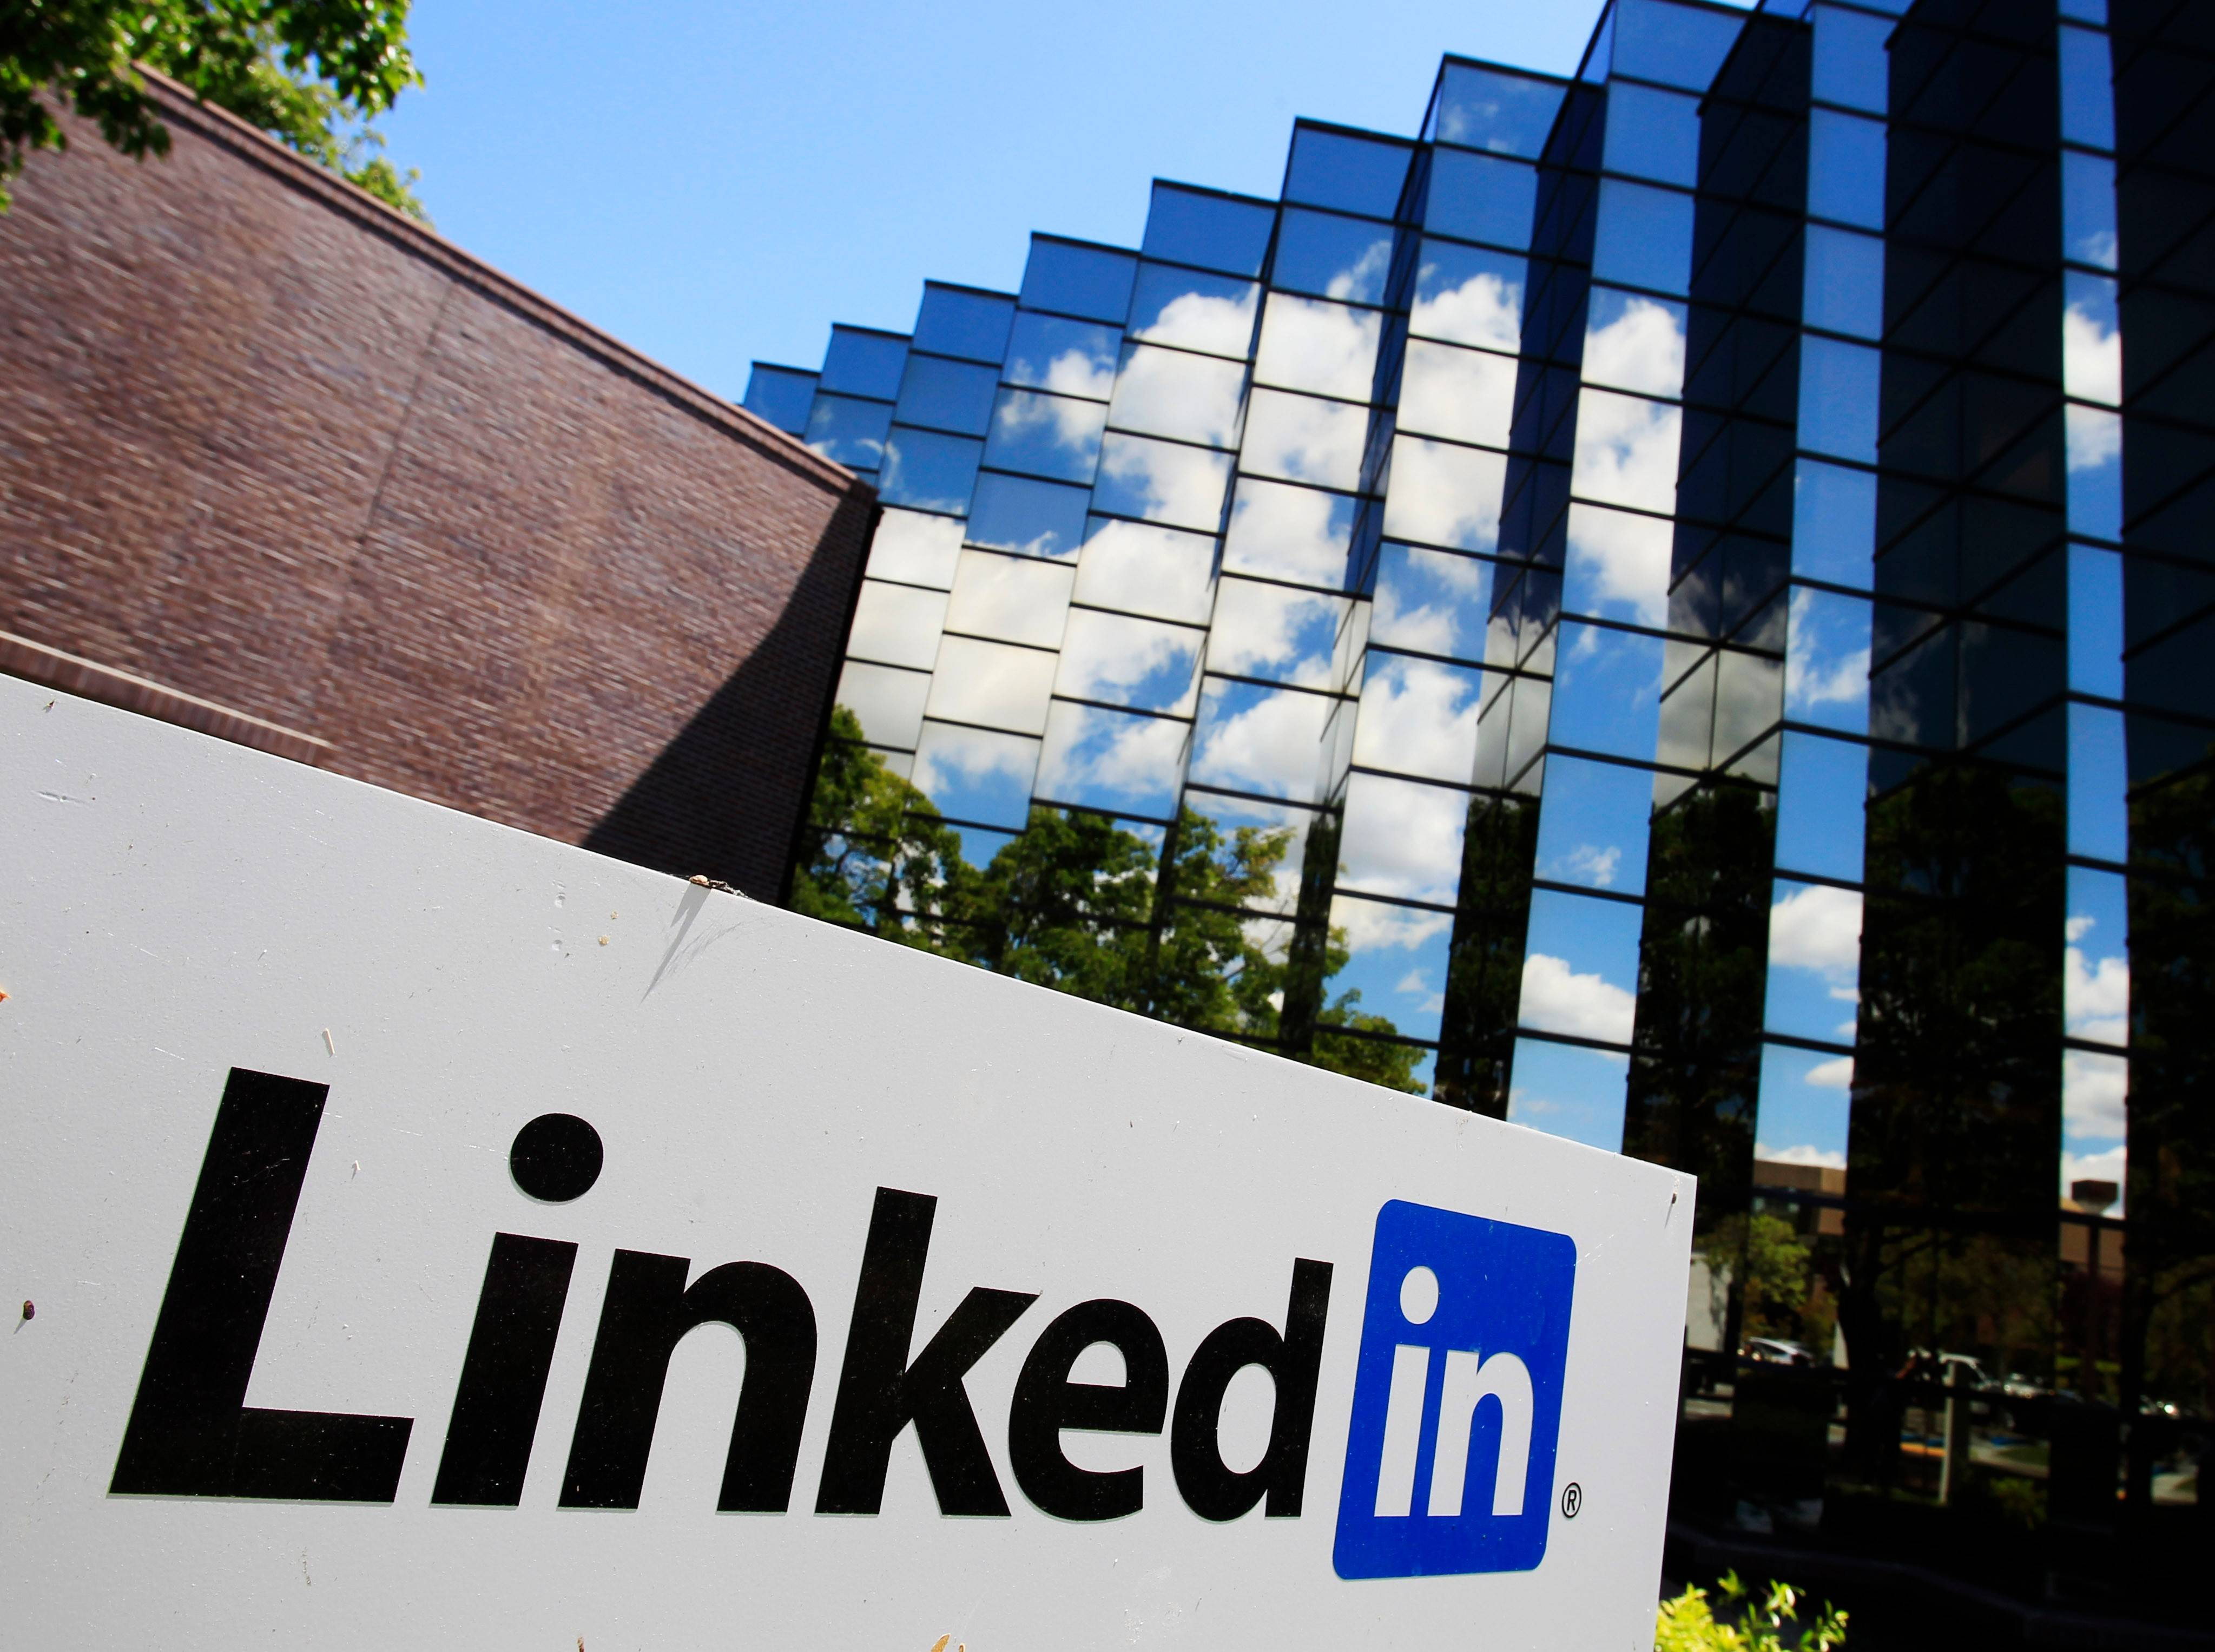 Abbott was named on LinkedIn's list of Top Companies to Work For in the U.S.